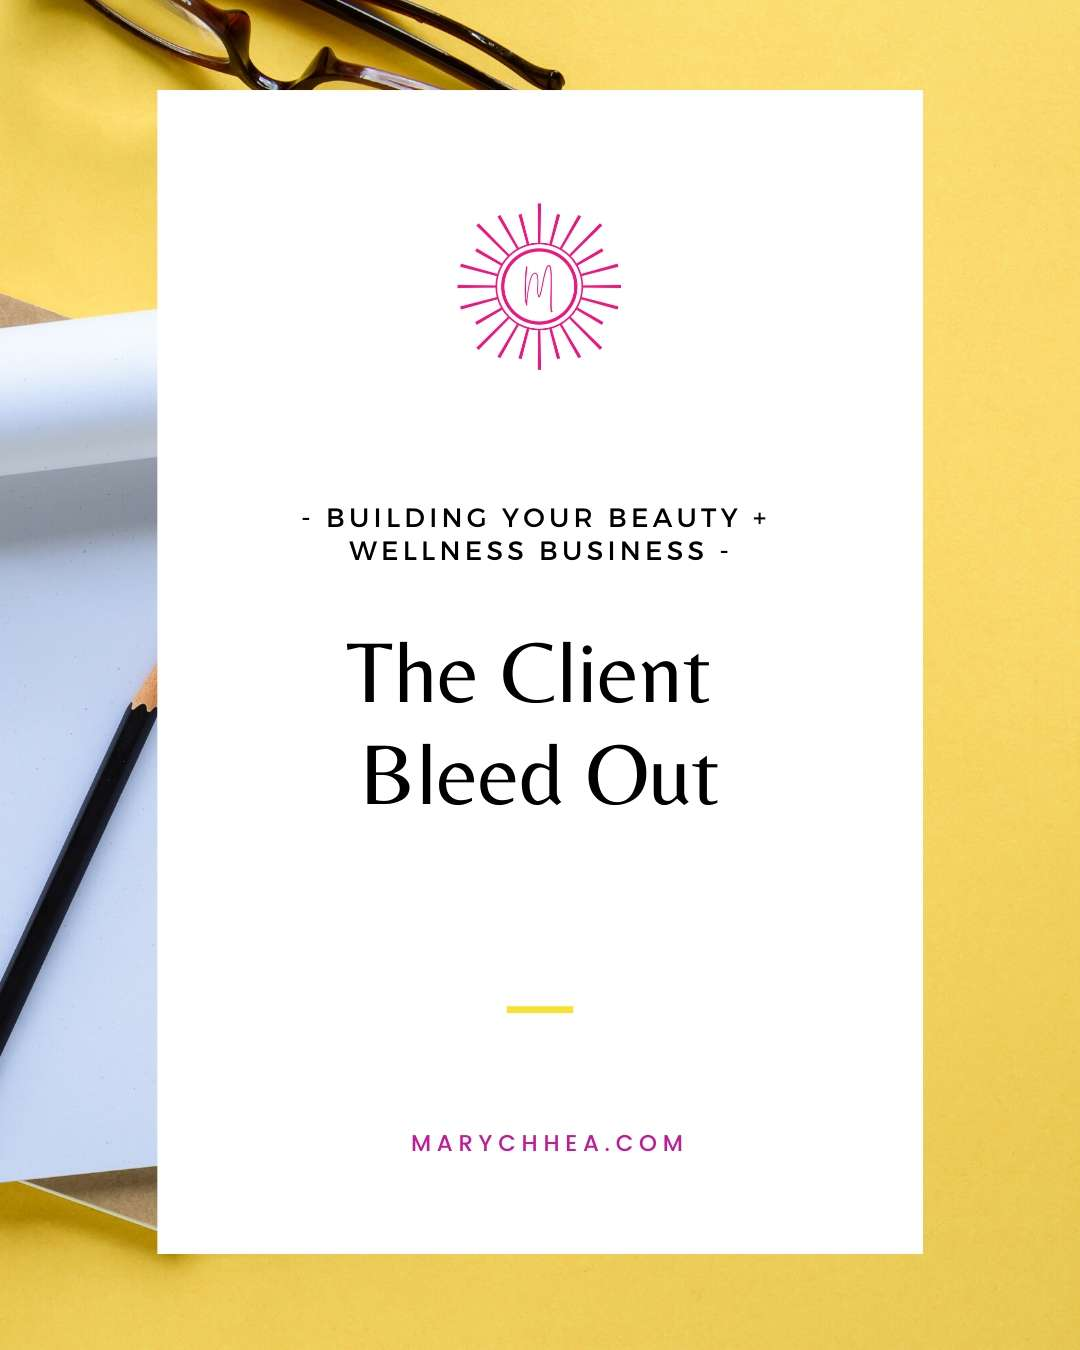 Blog Post Title reads: Building your beauty and wellness business, The Client Bleed Out